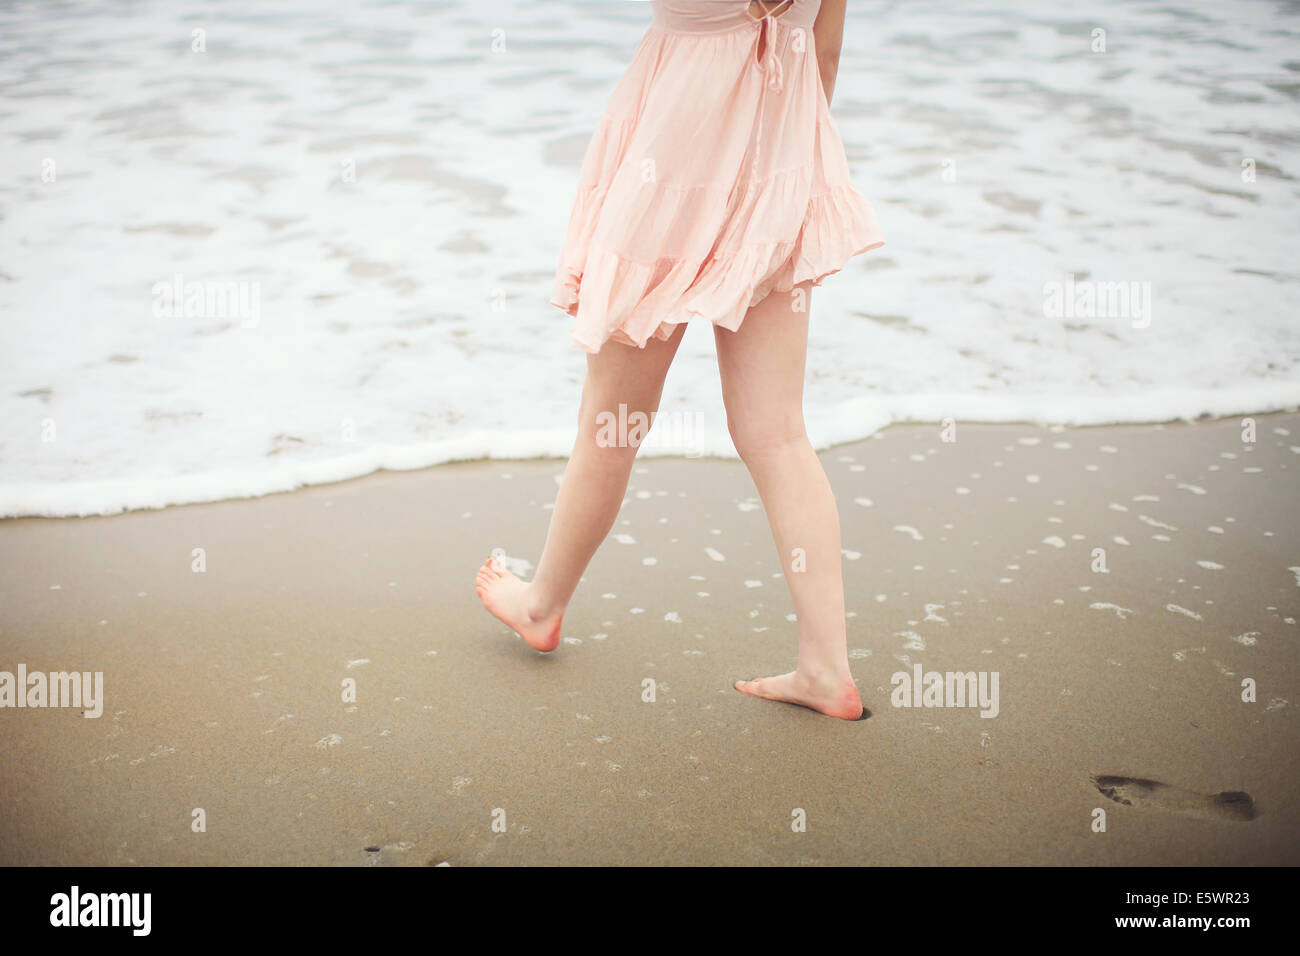 Cropped shot of woman paddling on beach Photo Stock